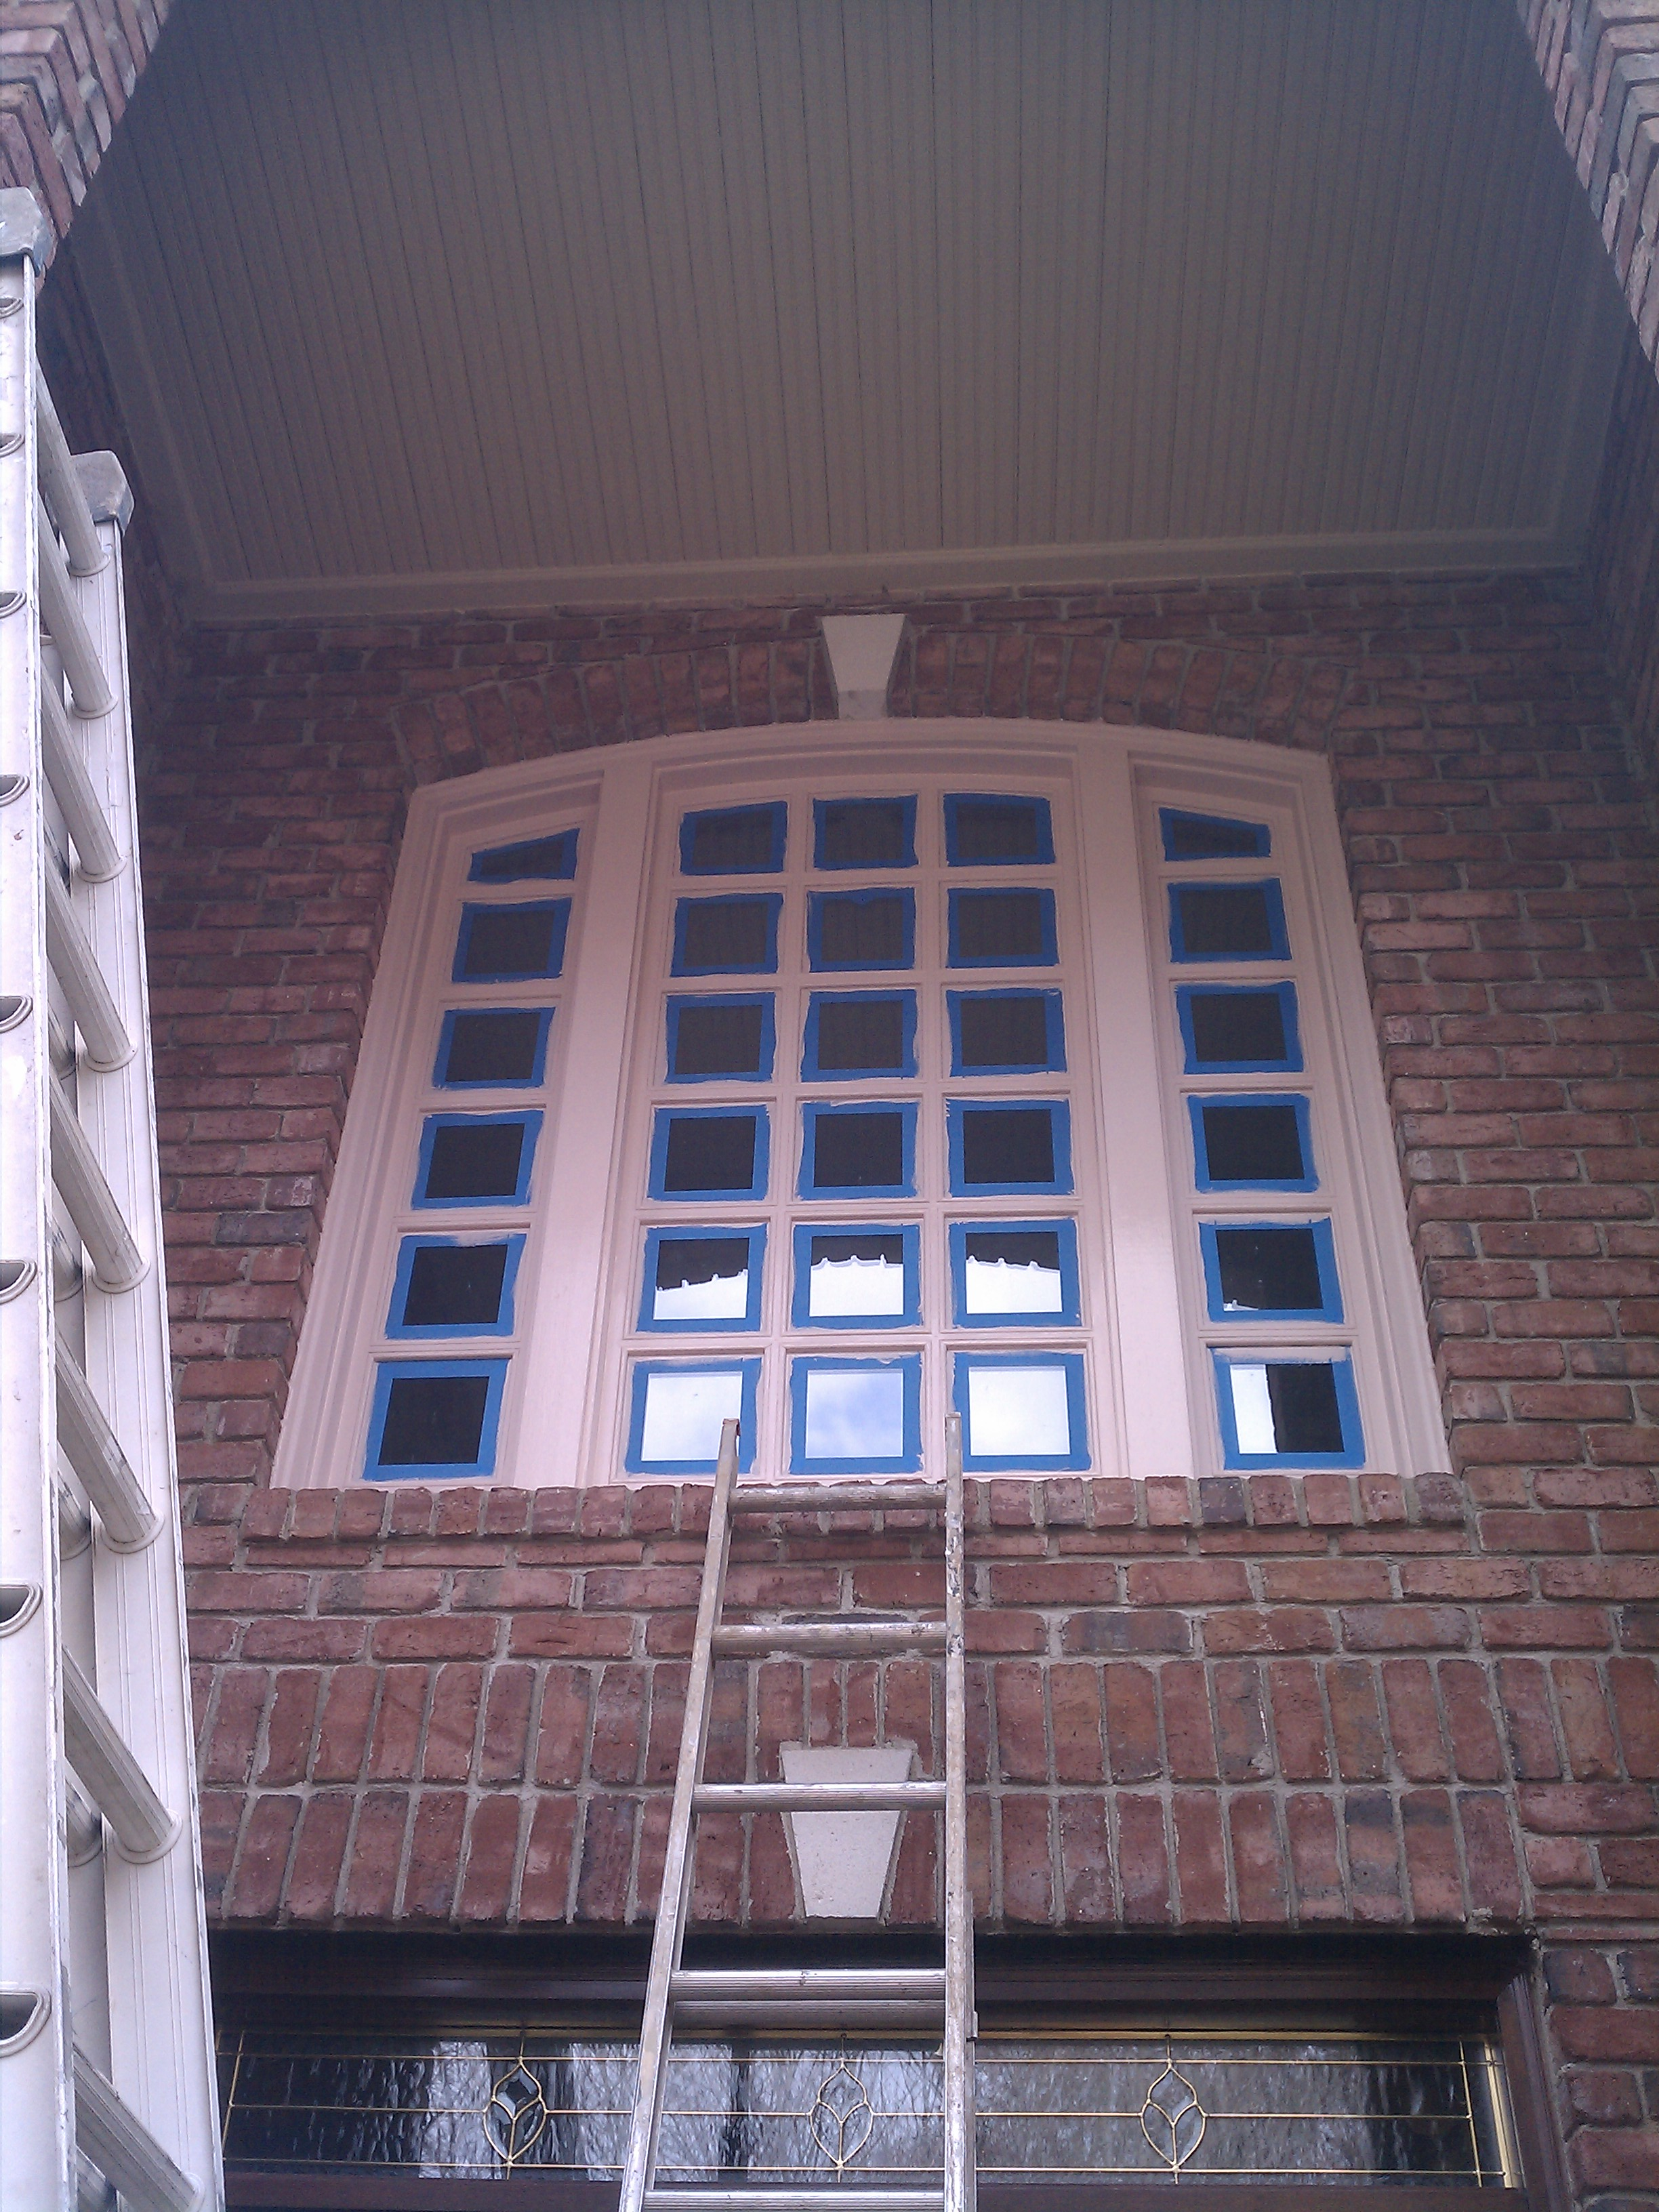 Foyer-window-02-before-with-tape-1